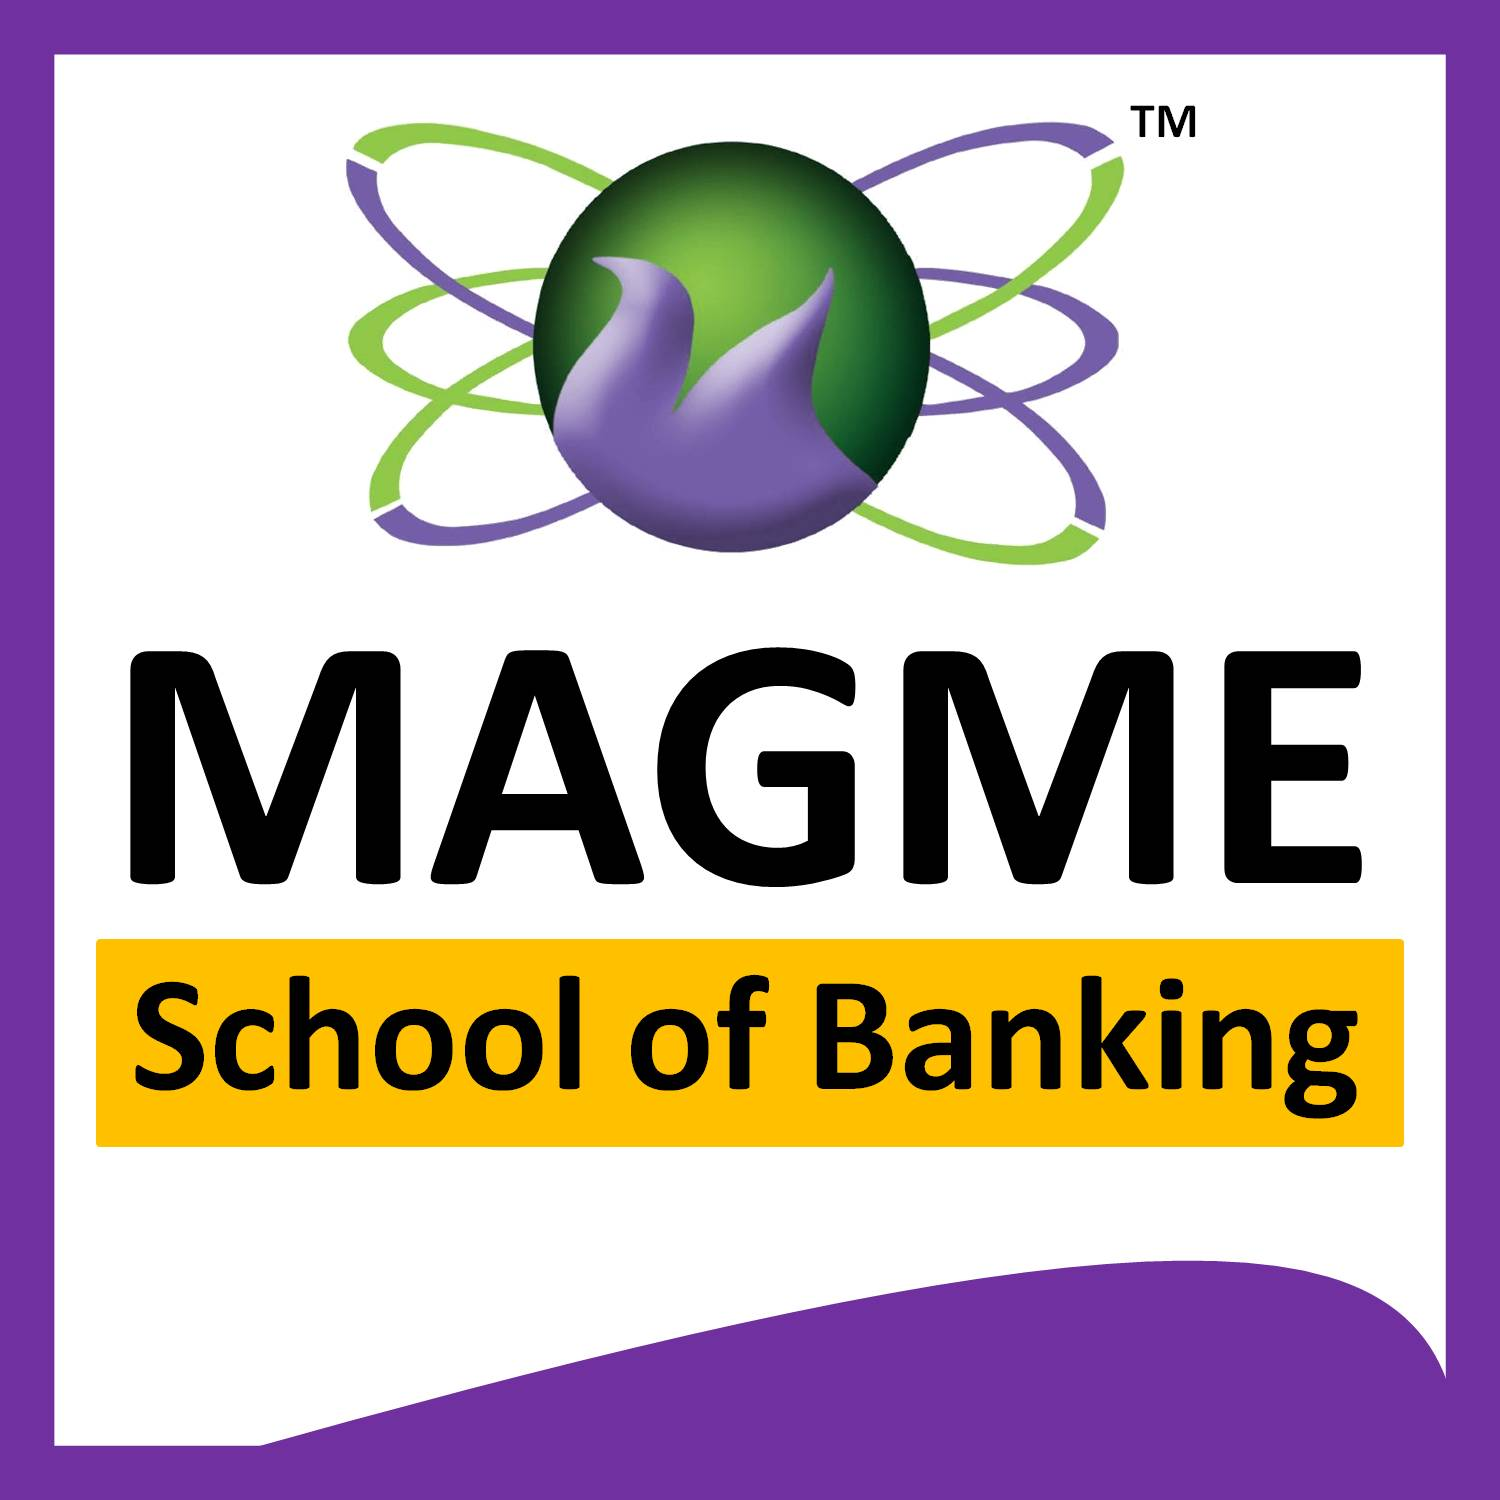 Magme School of Banking